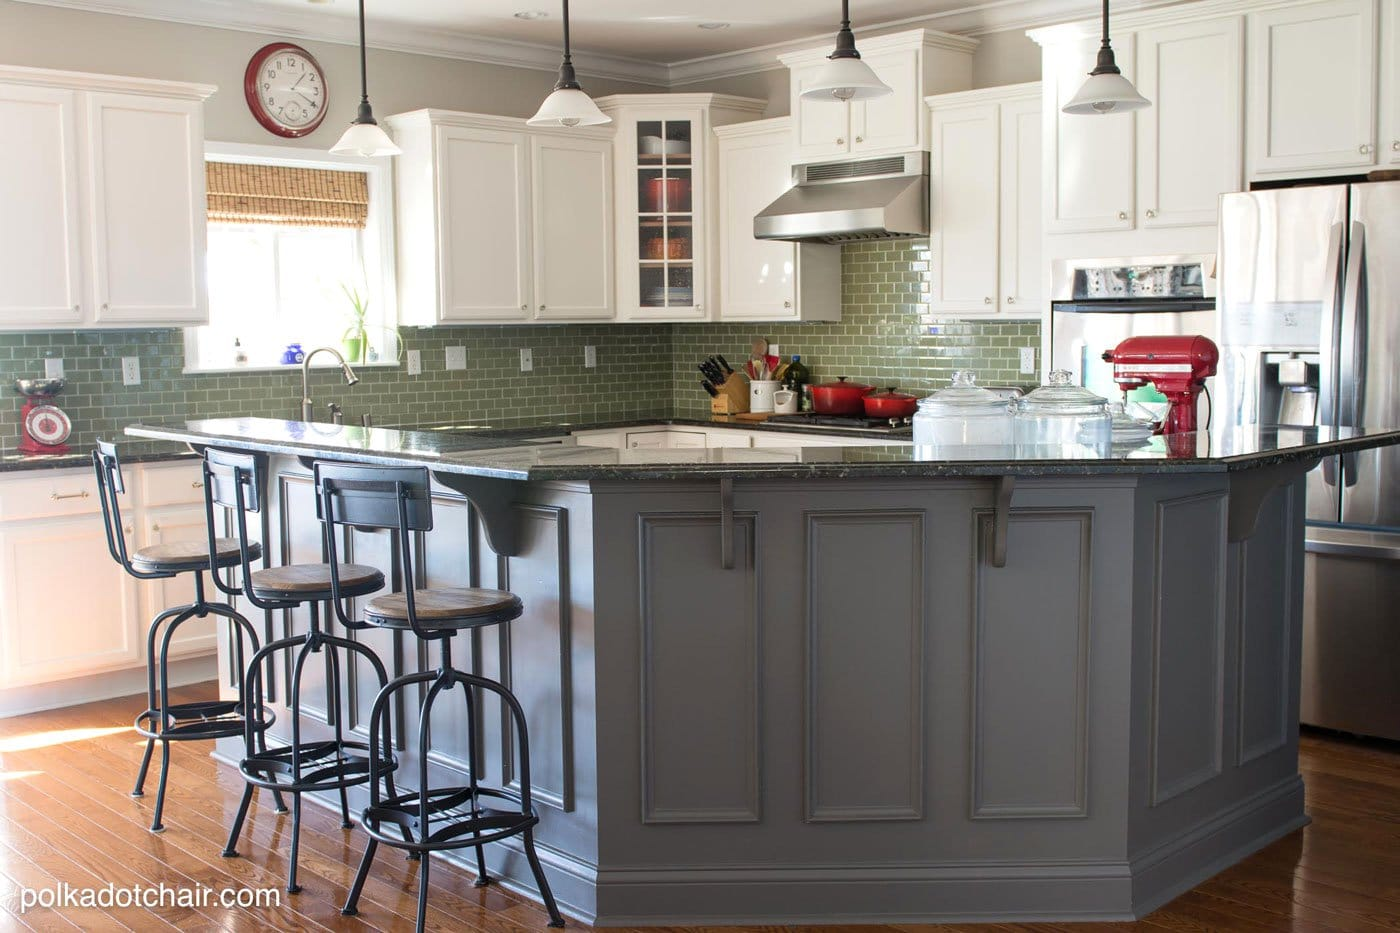 painted kitchen islands affordable remodel tips for painting cabinets the polka dot chair